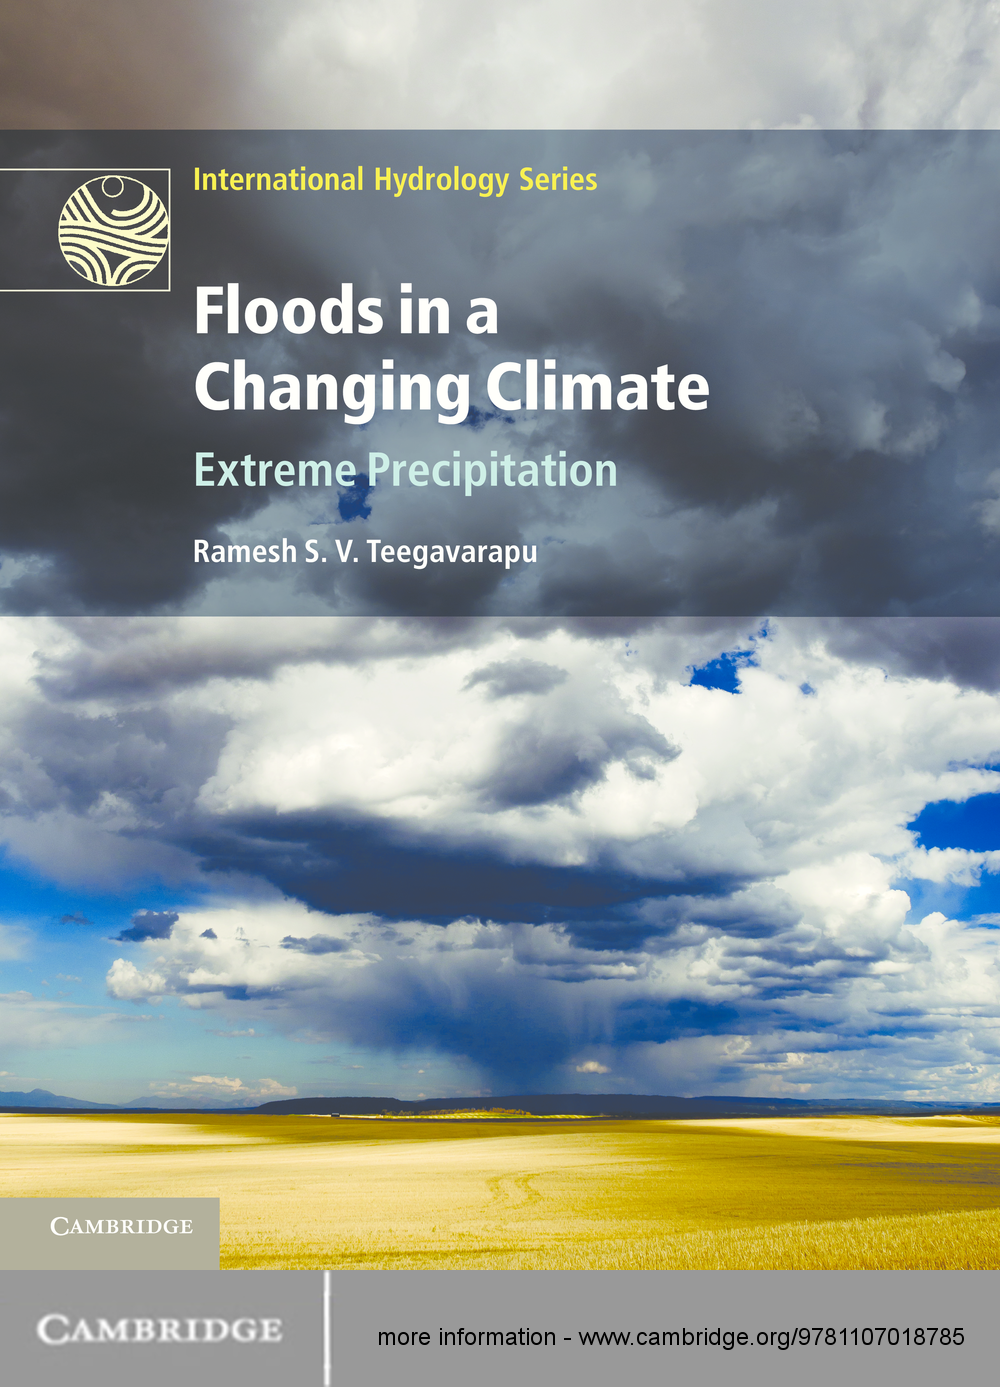 Floods in a Changing Climate: Extreme Precipitation